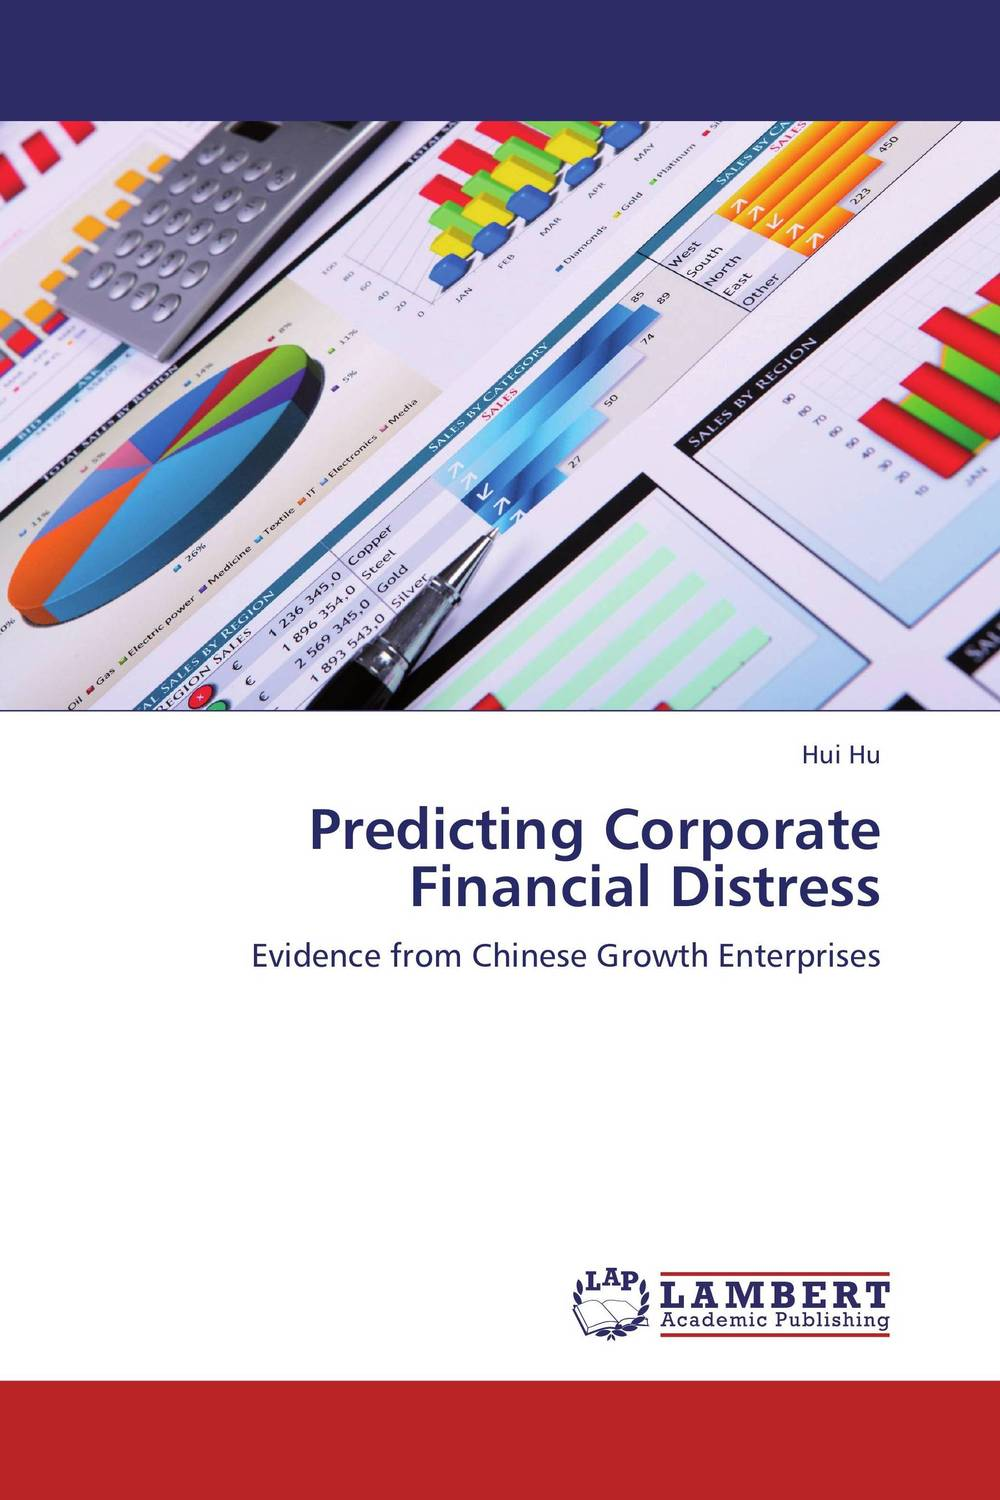 Predicting Corporate Financial Distress damsel in distress